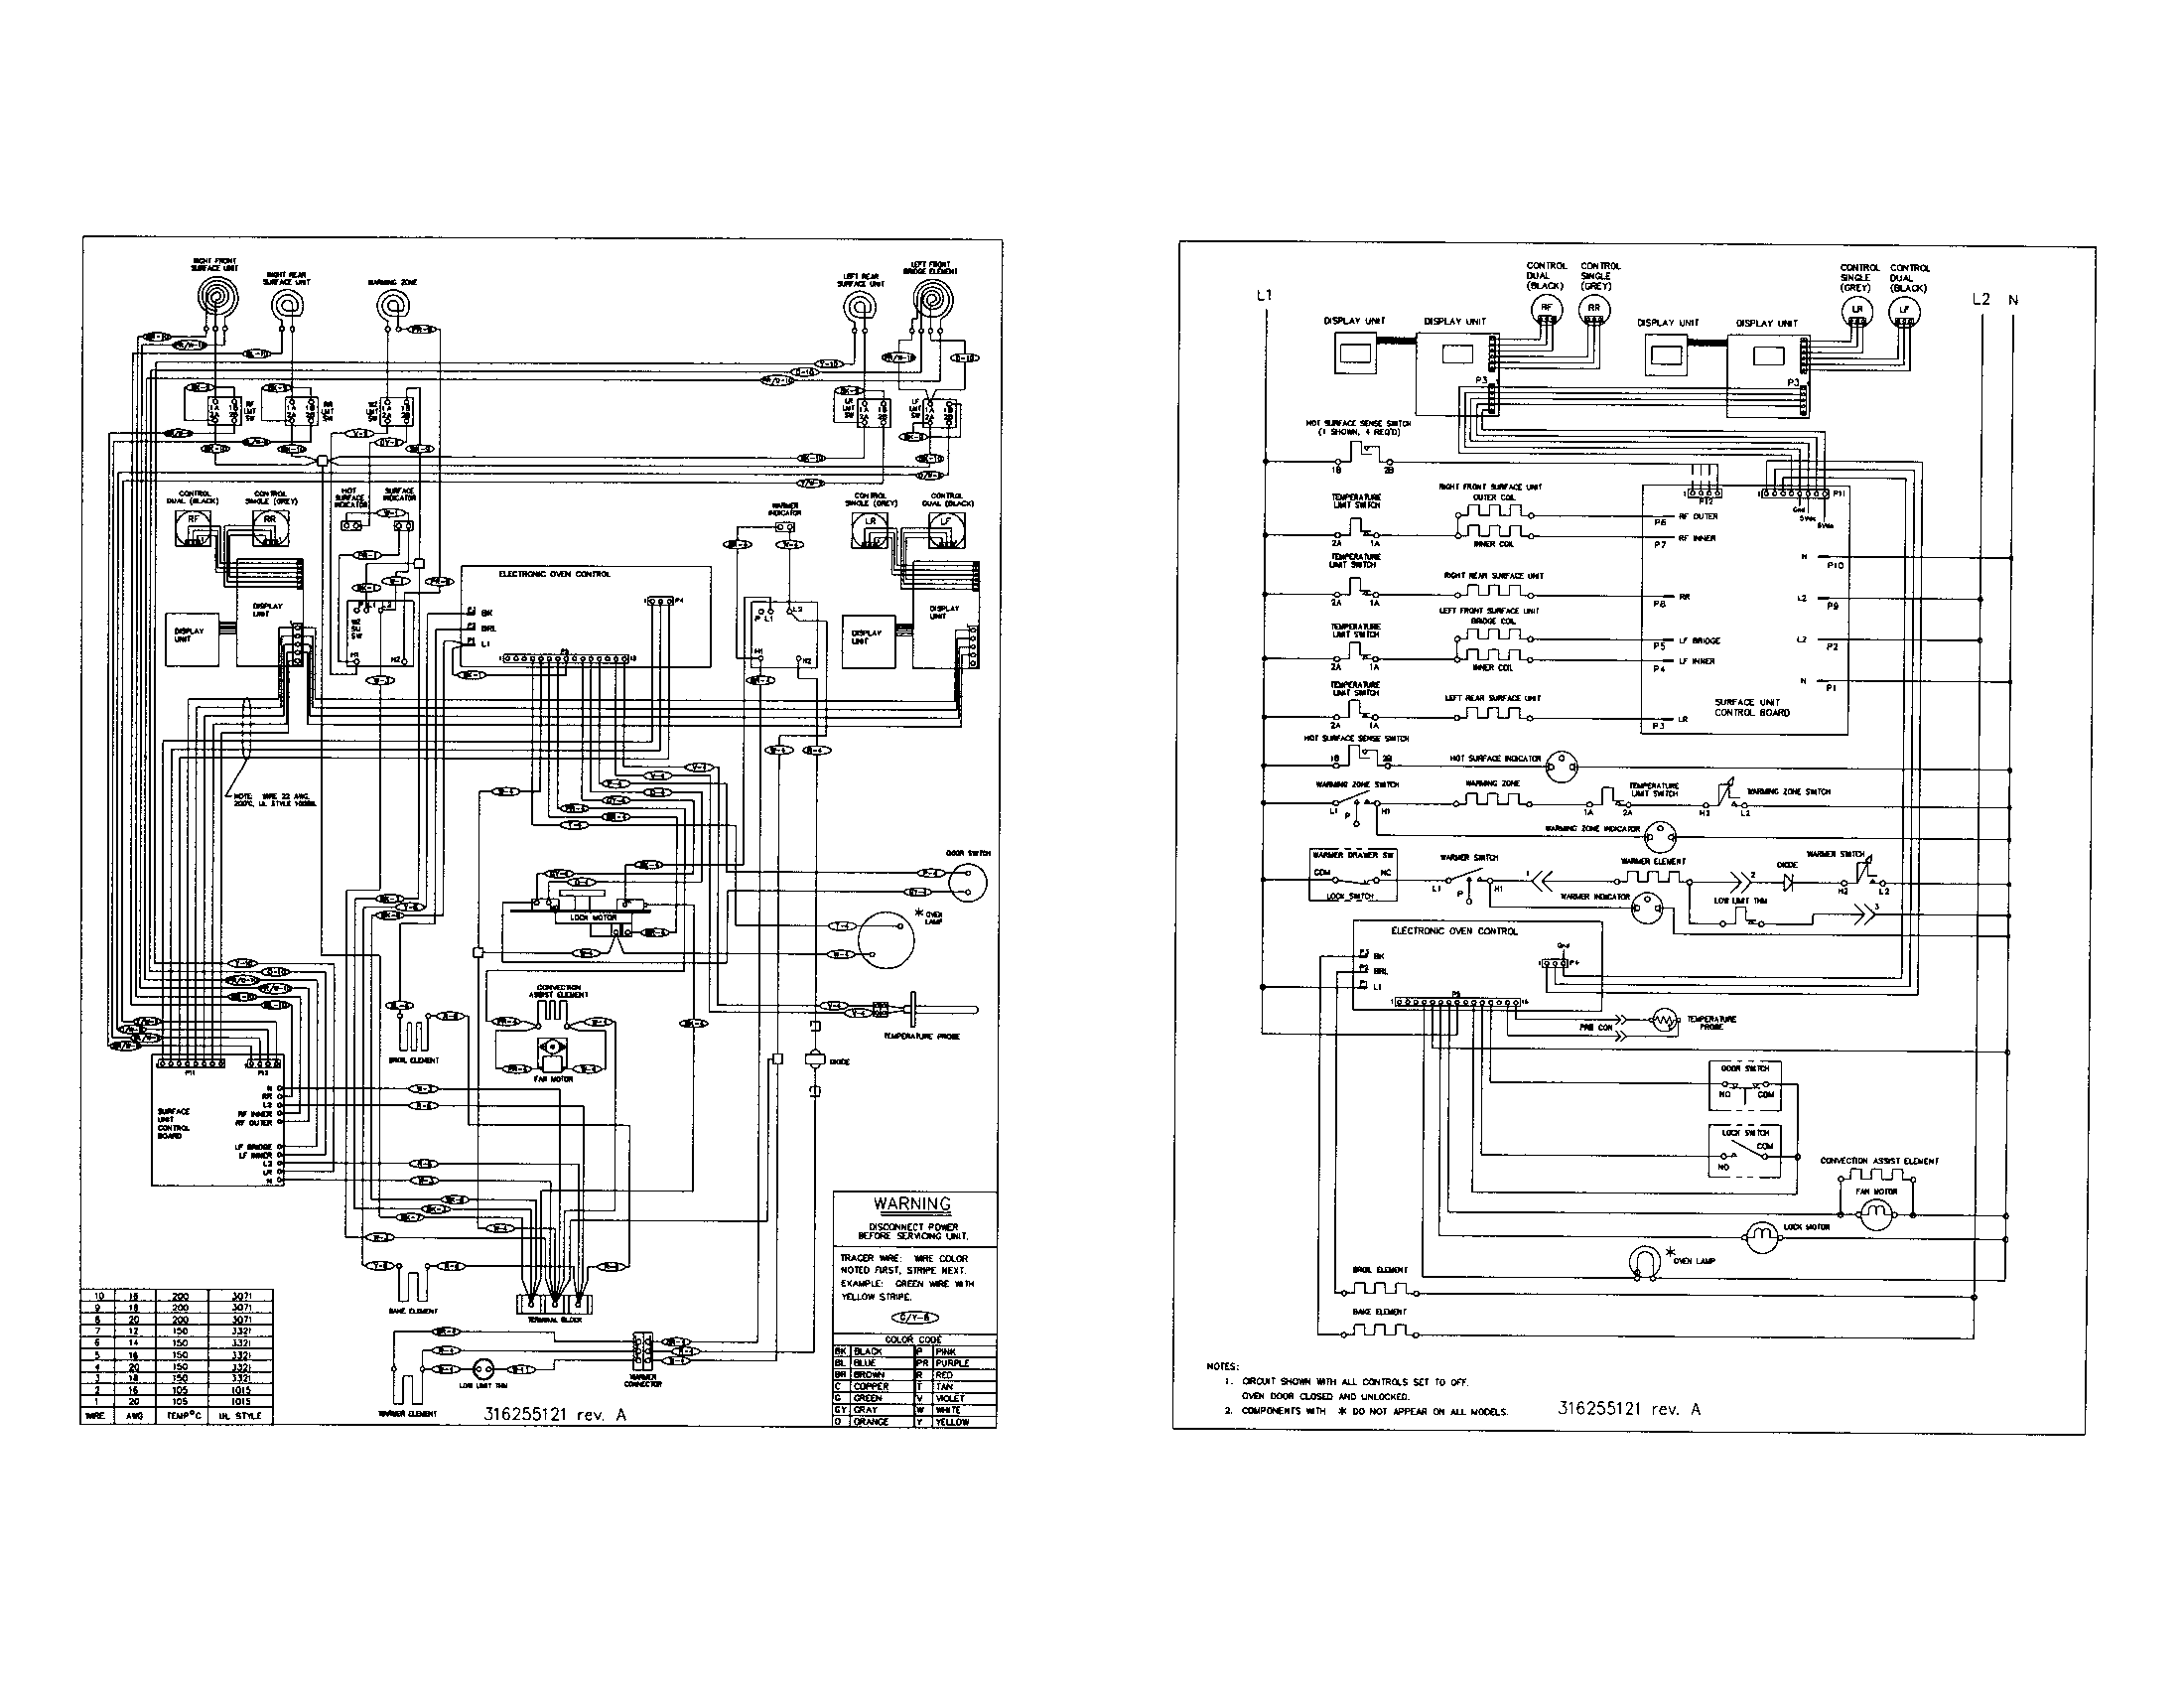 Universal Oven Thermostat Wiring Diagram 40 Images General Electric Partsresize